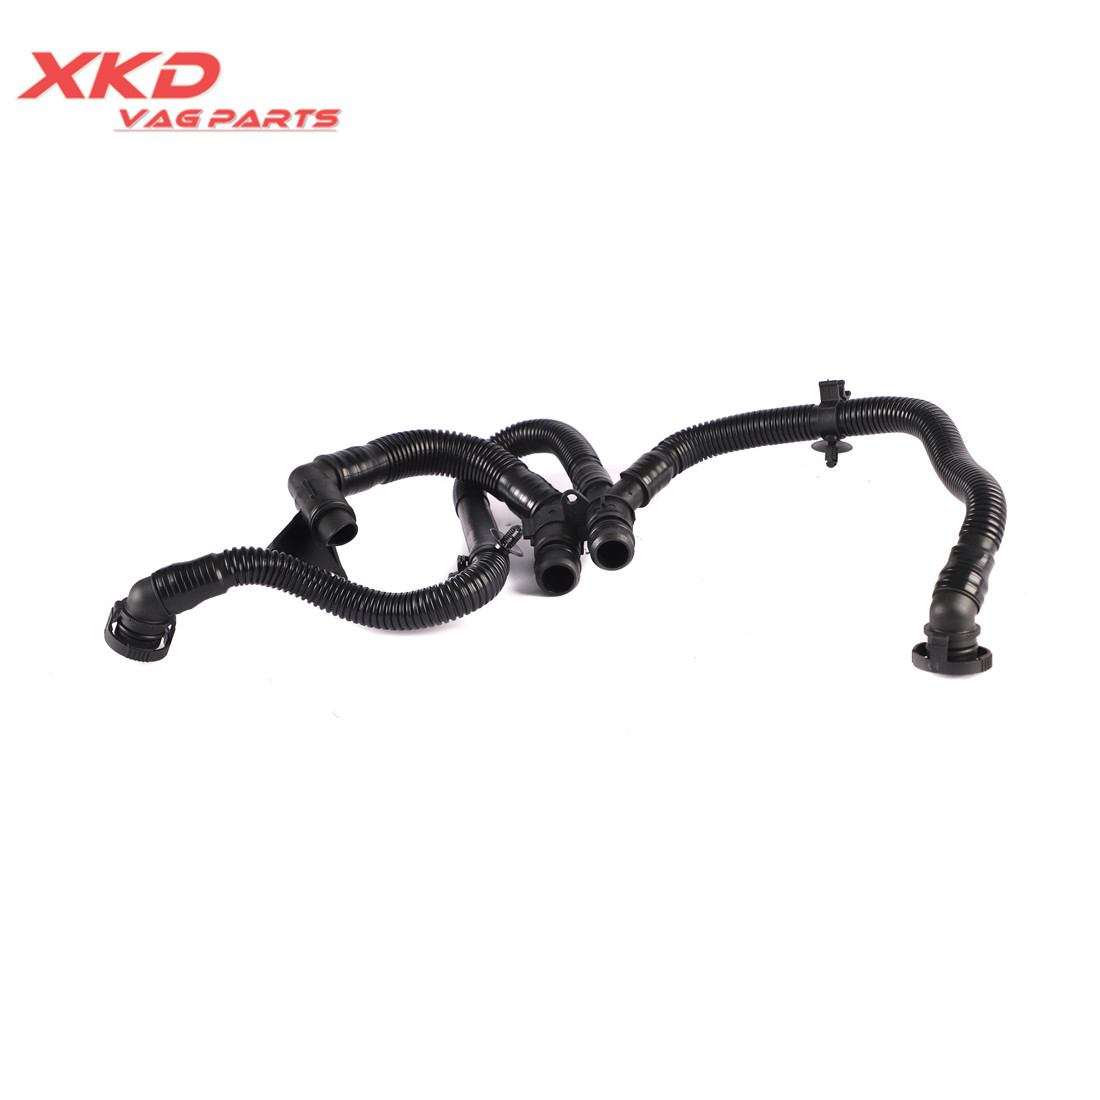 Crankcase Breather Vent Hose Assembly For A UDI A4 A6 A8